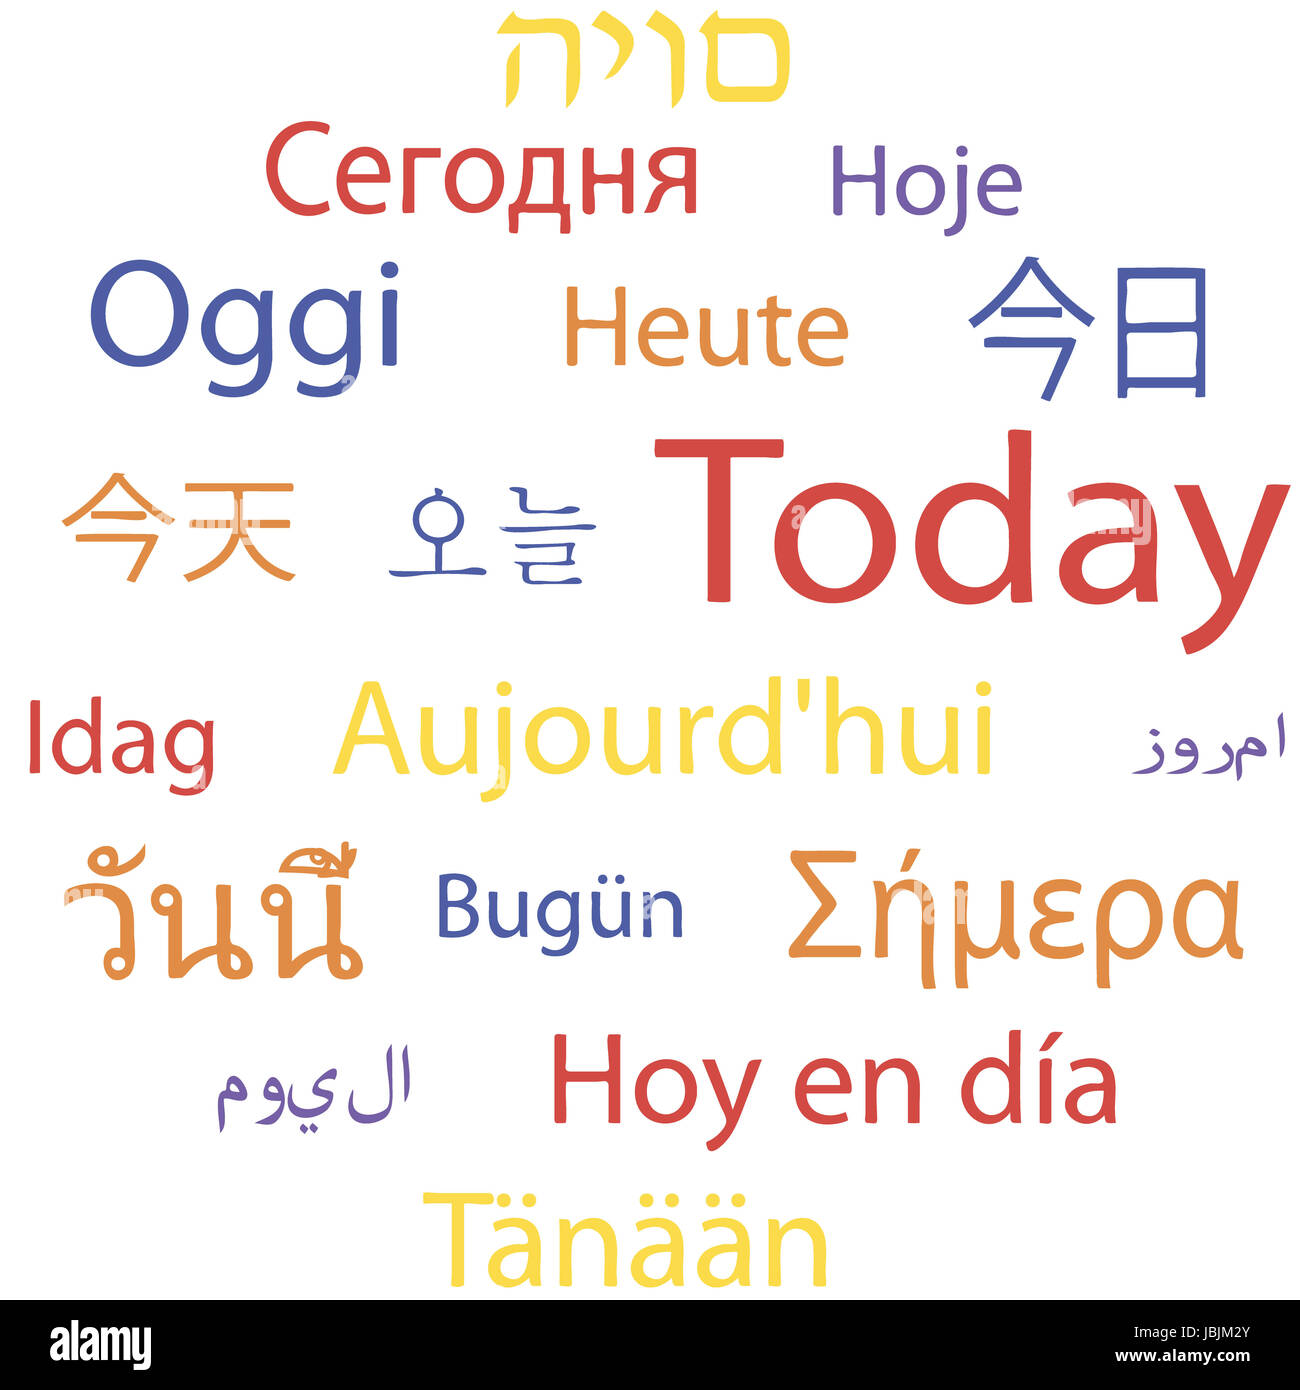 Tag cloud: 'Today' in different languages. Vector illustration. - Stock Image